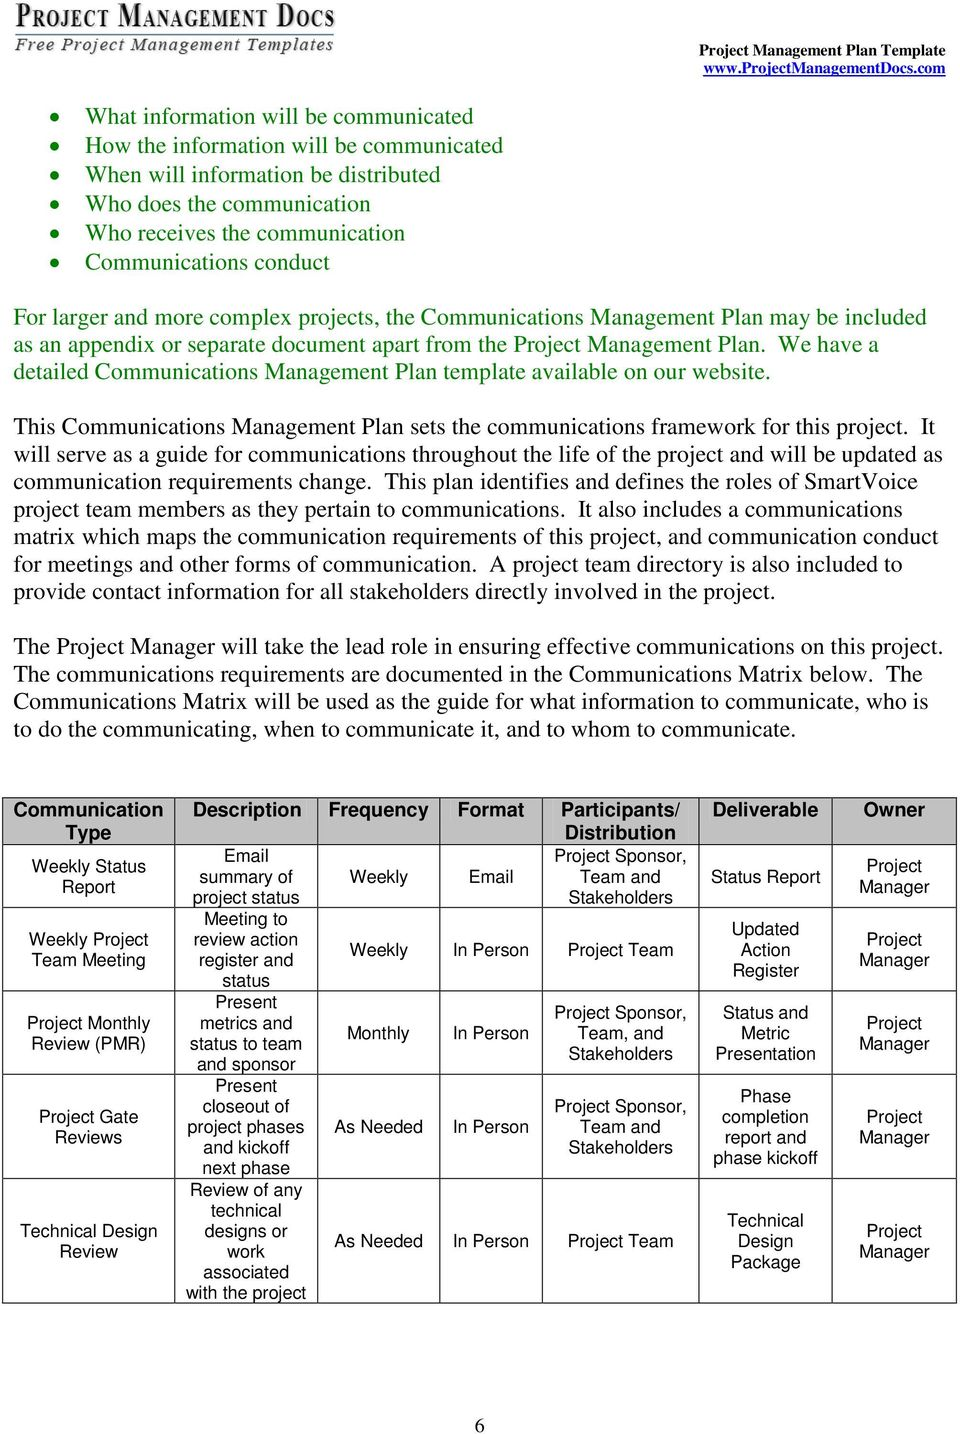 We have a detailed Communications Management Plan template available on our website. This Communications Management Plan sets the communications framework for this project.